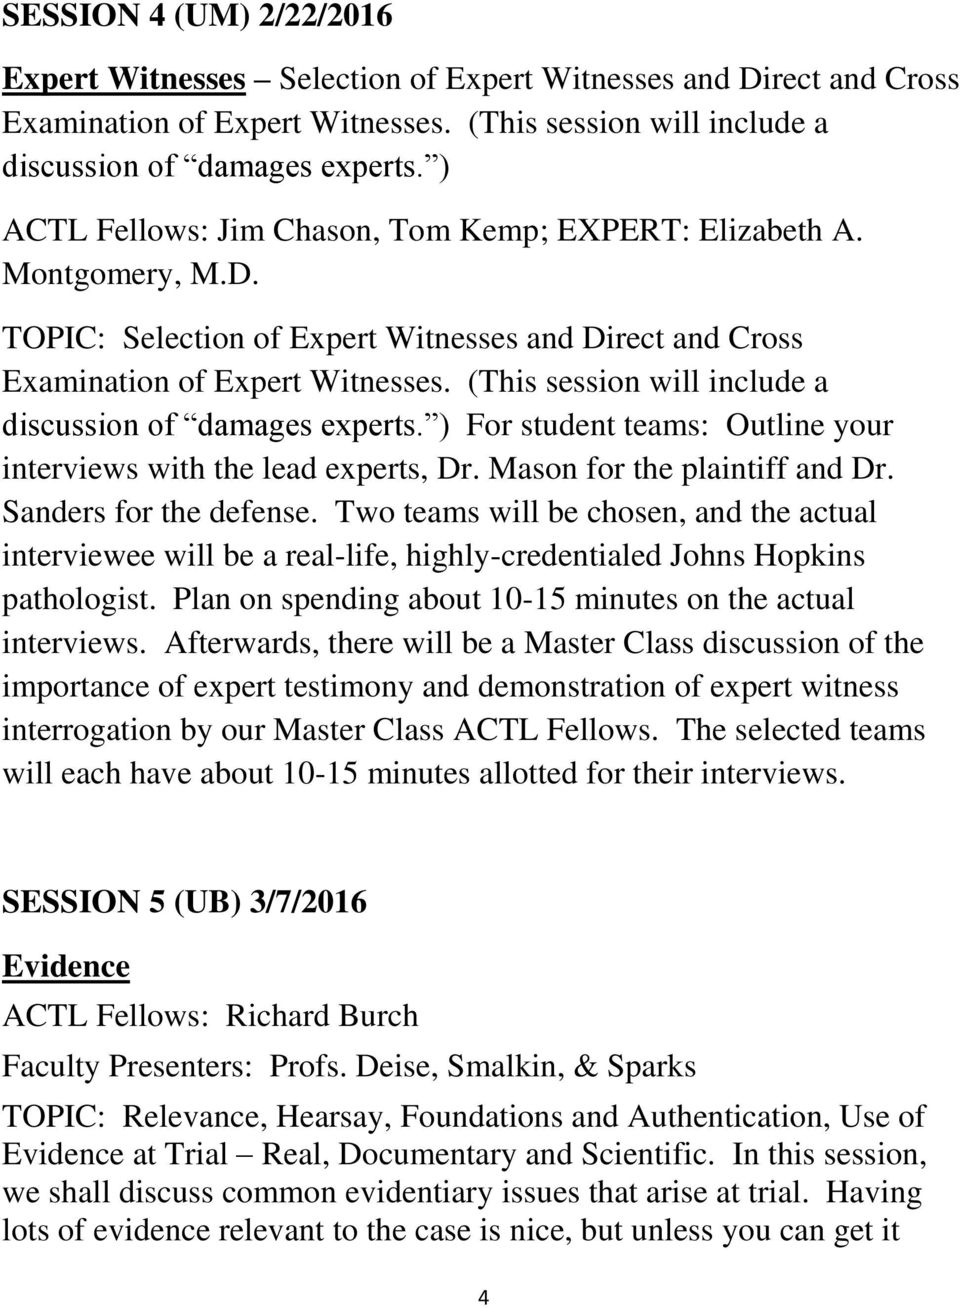 (This session will include a discussion of damages experts. ) For student teams: Outline your interviews with the lead experts, Dr. Mason for the plaintiff and Dr. Sanders for the defense.